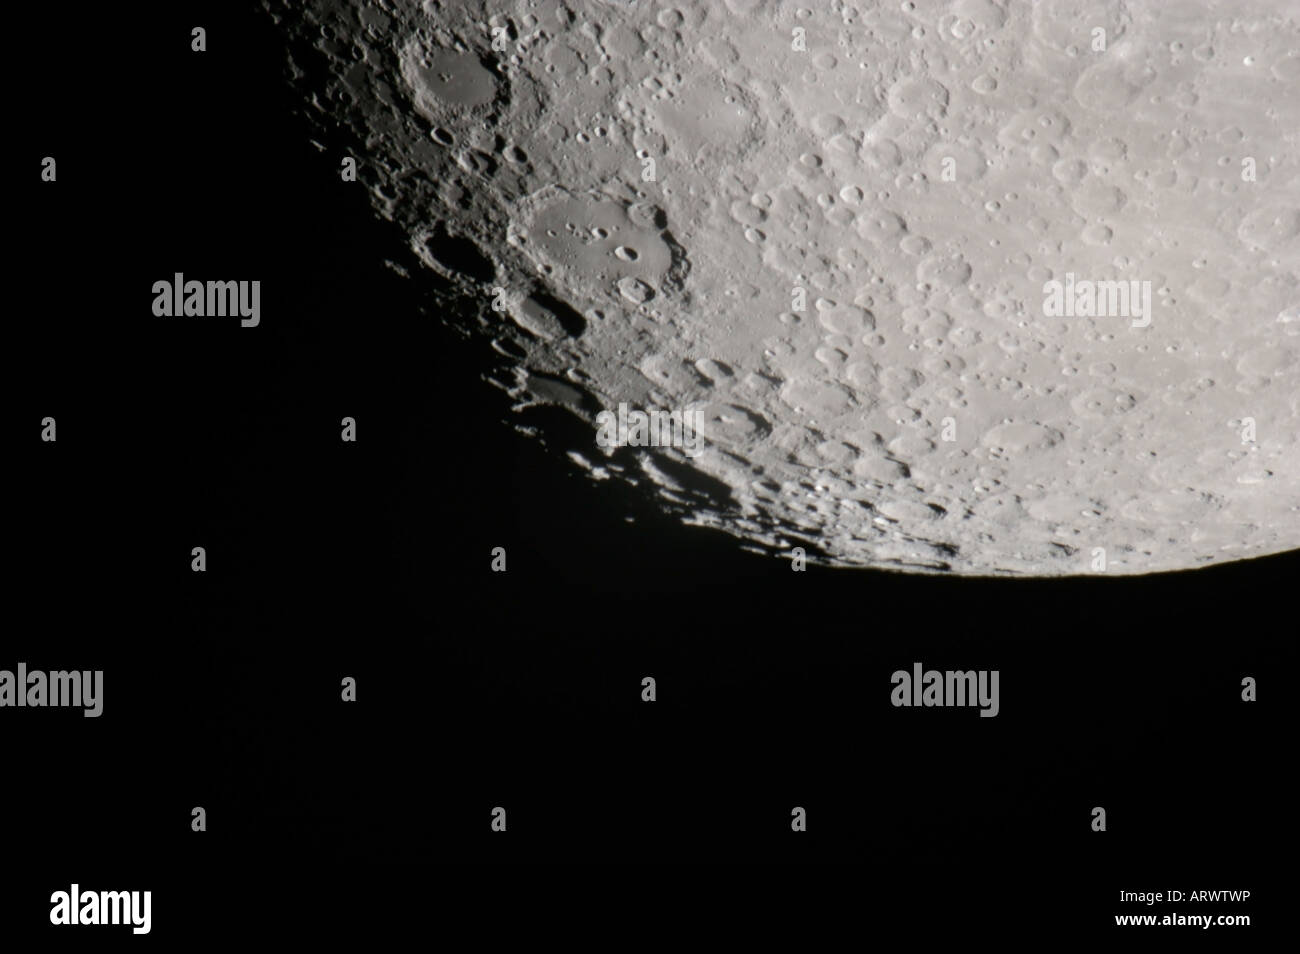 Moon surface craters - Stock Image